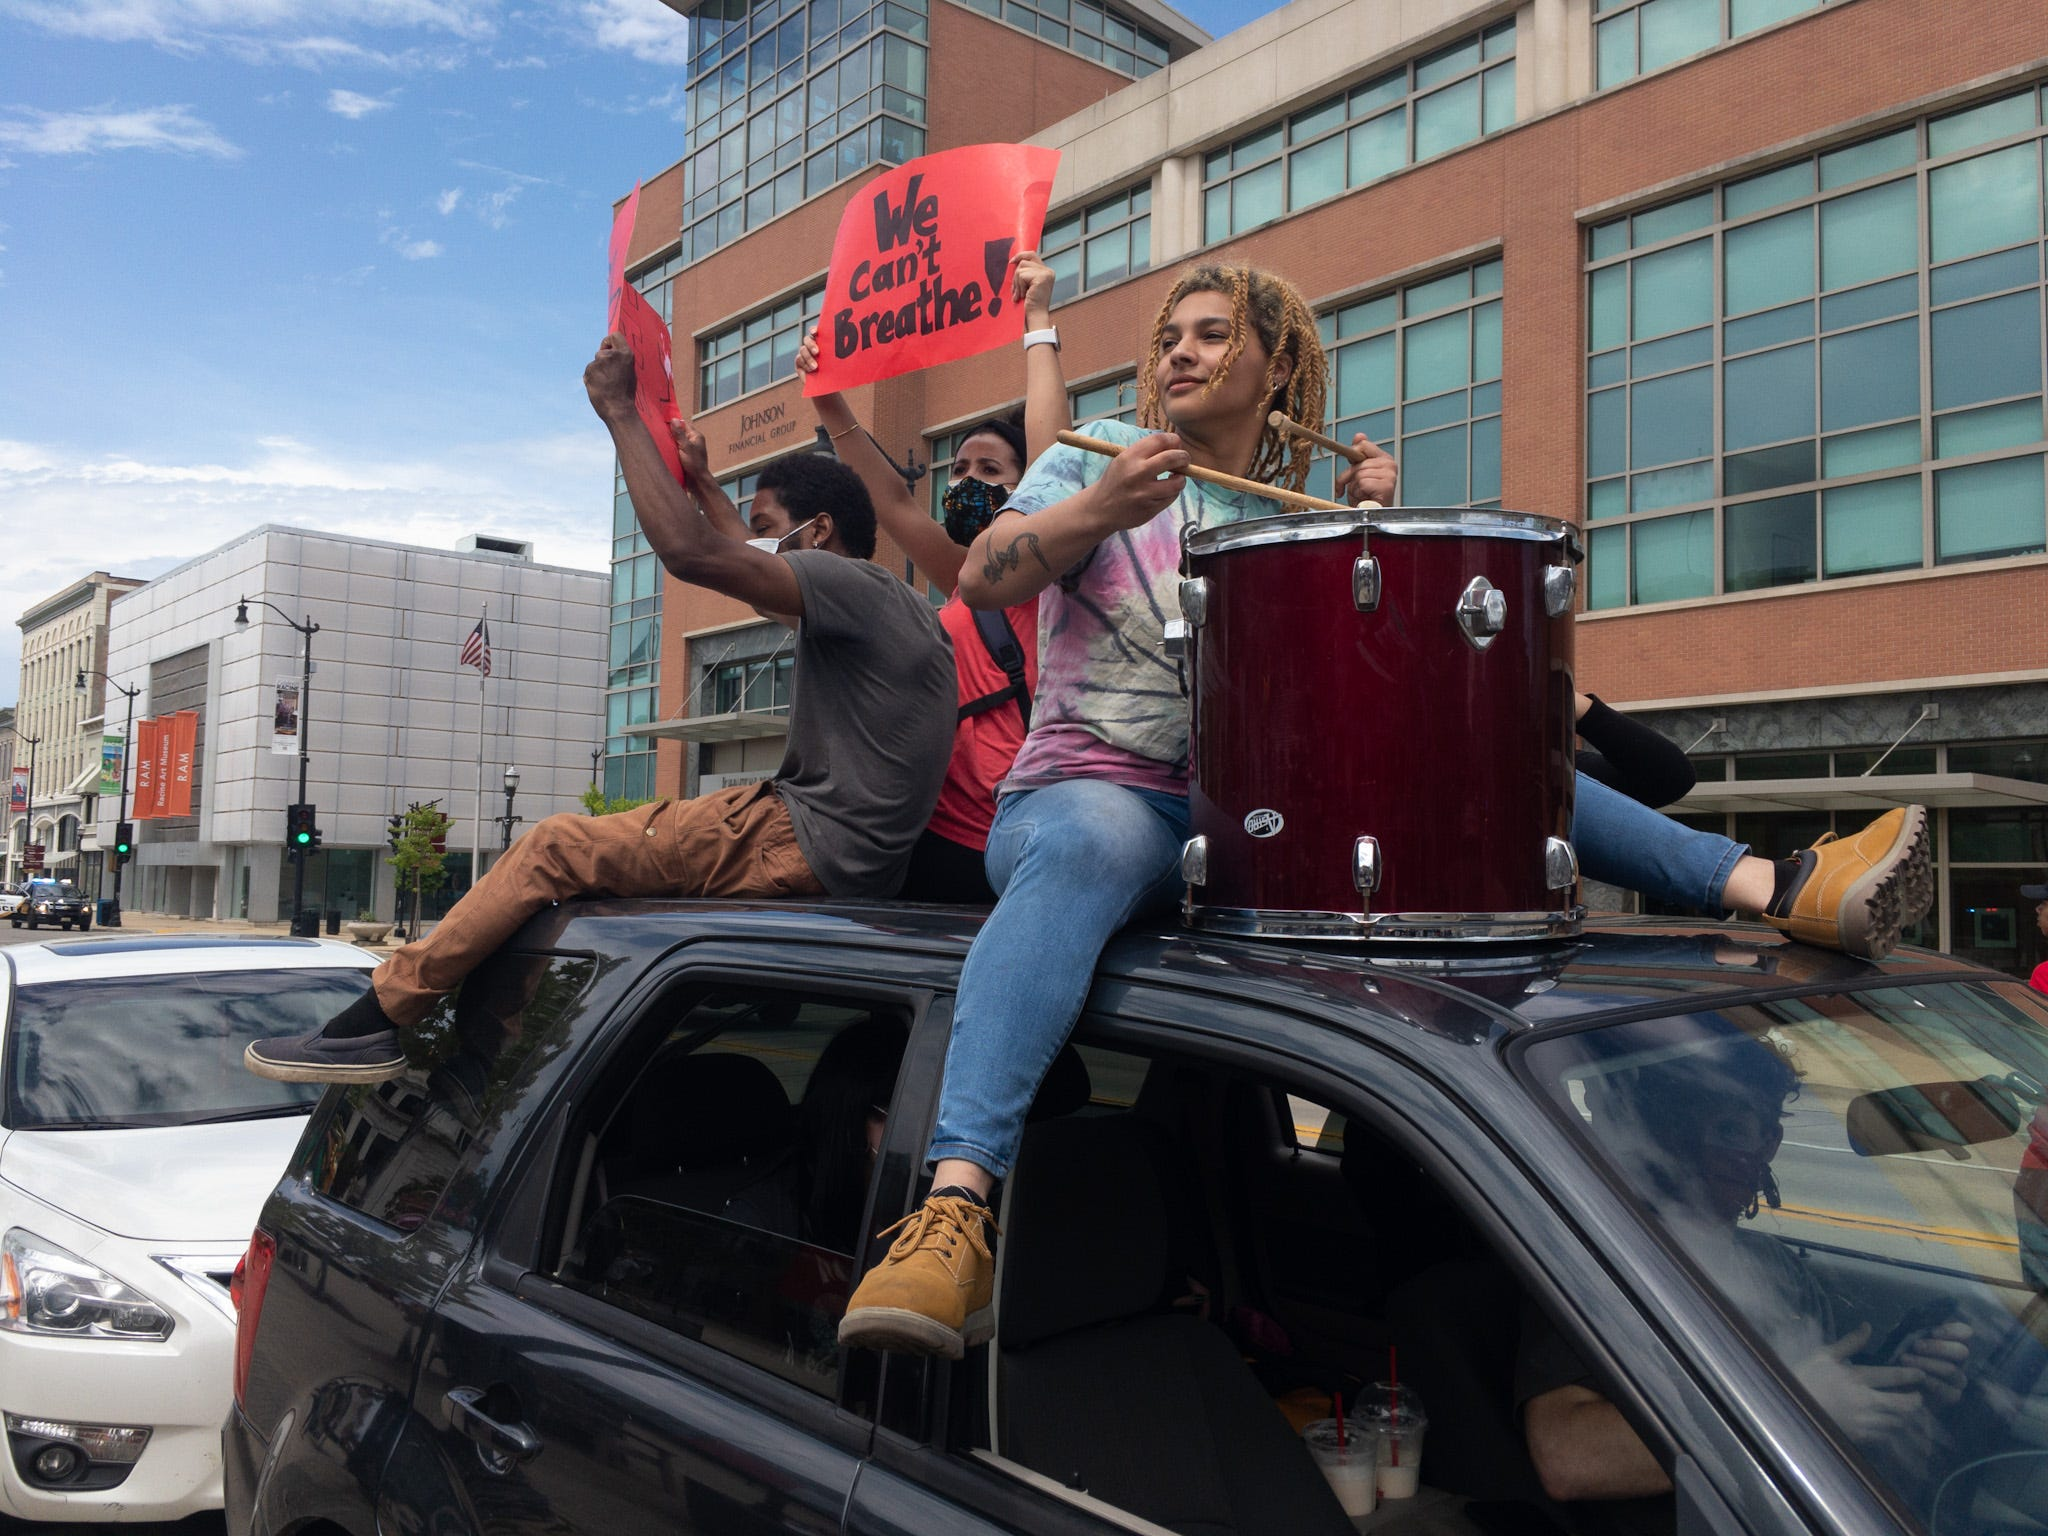 Olivia Owens bangs a drum while riding atop a vehicle in Racine on during a protest decrying police brutality following the death of George Floyd.